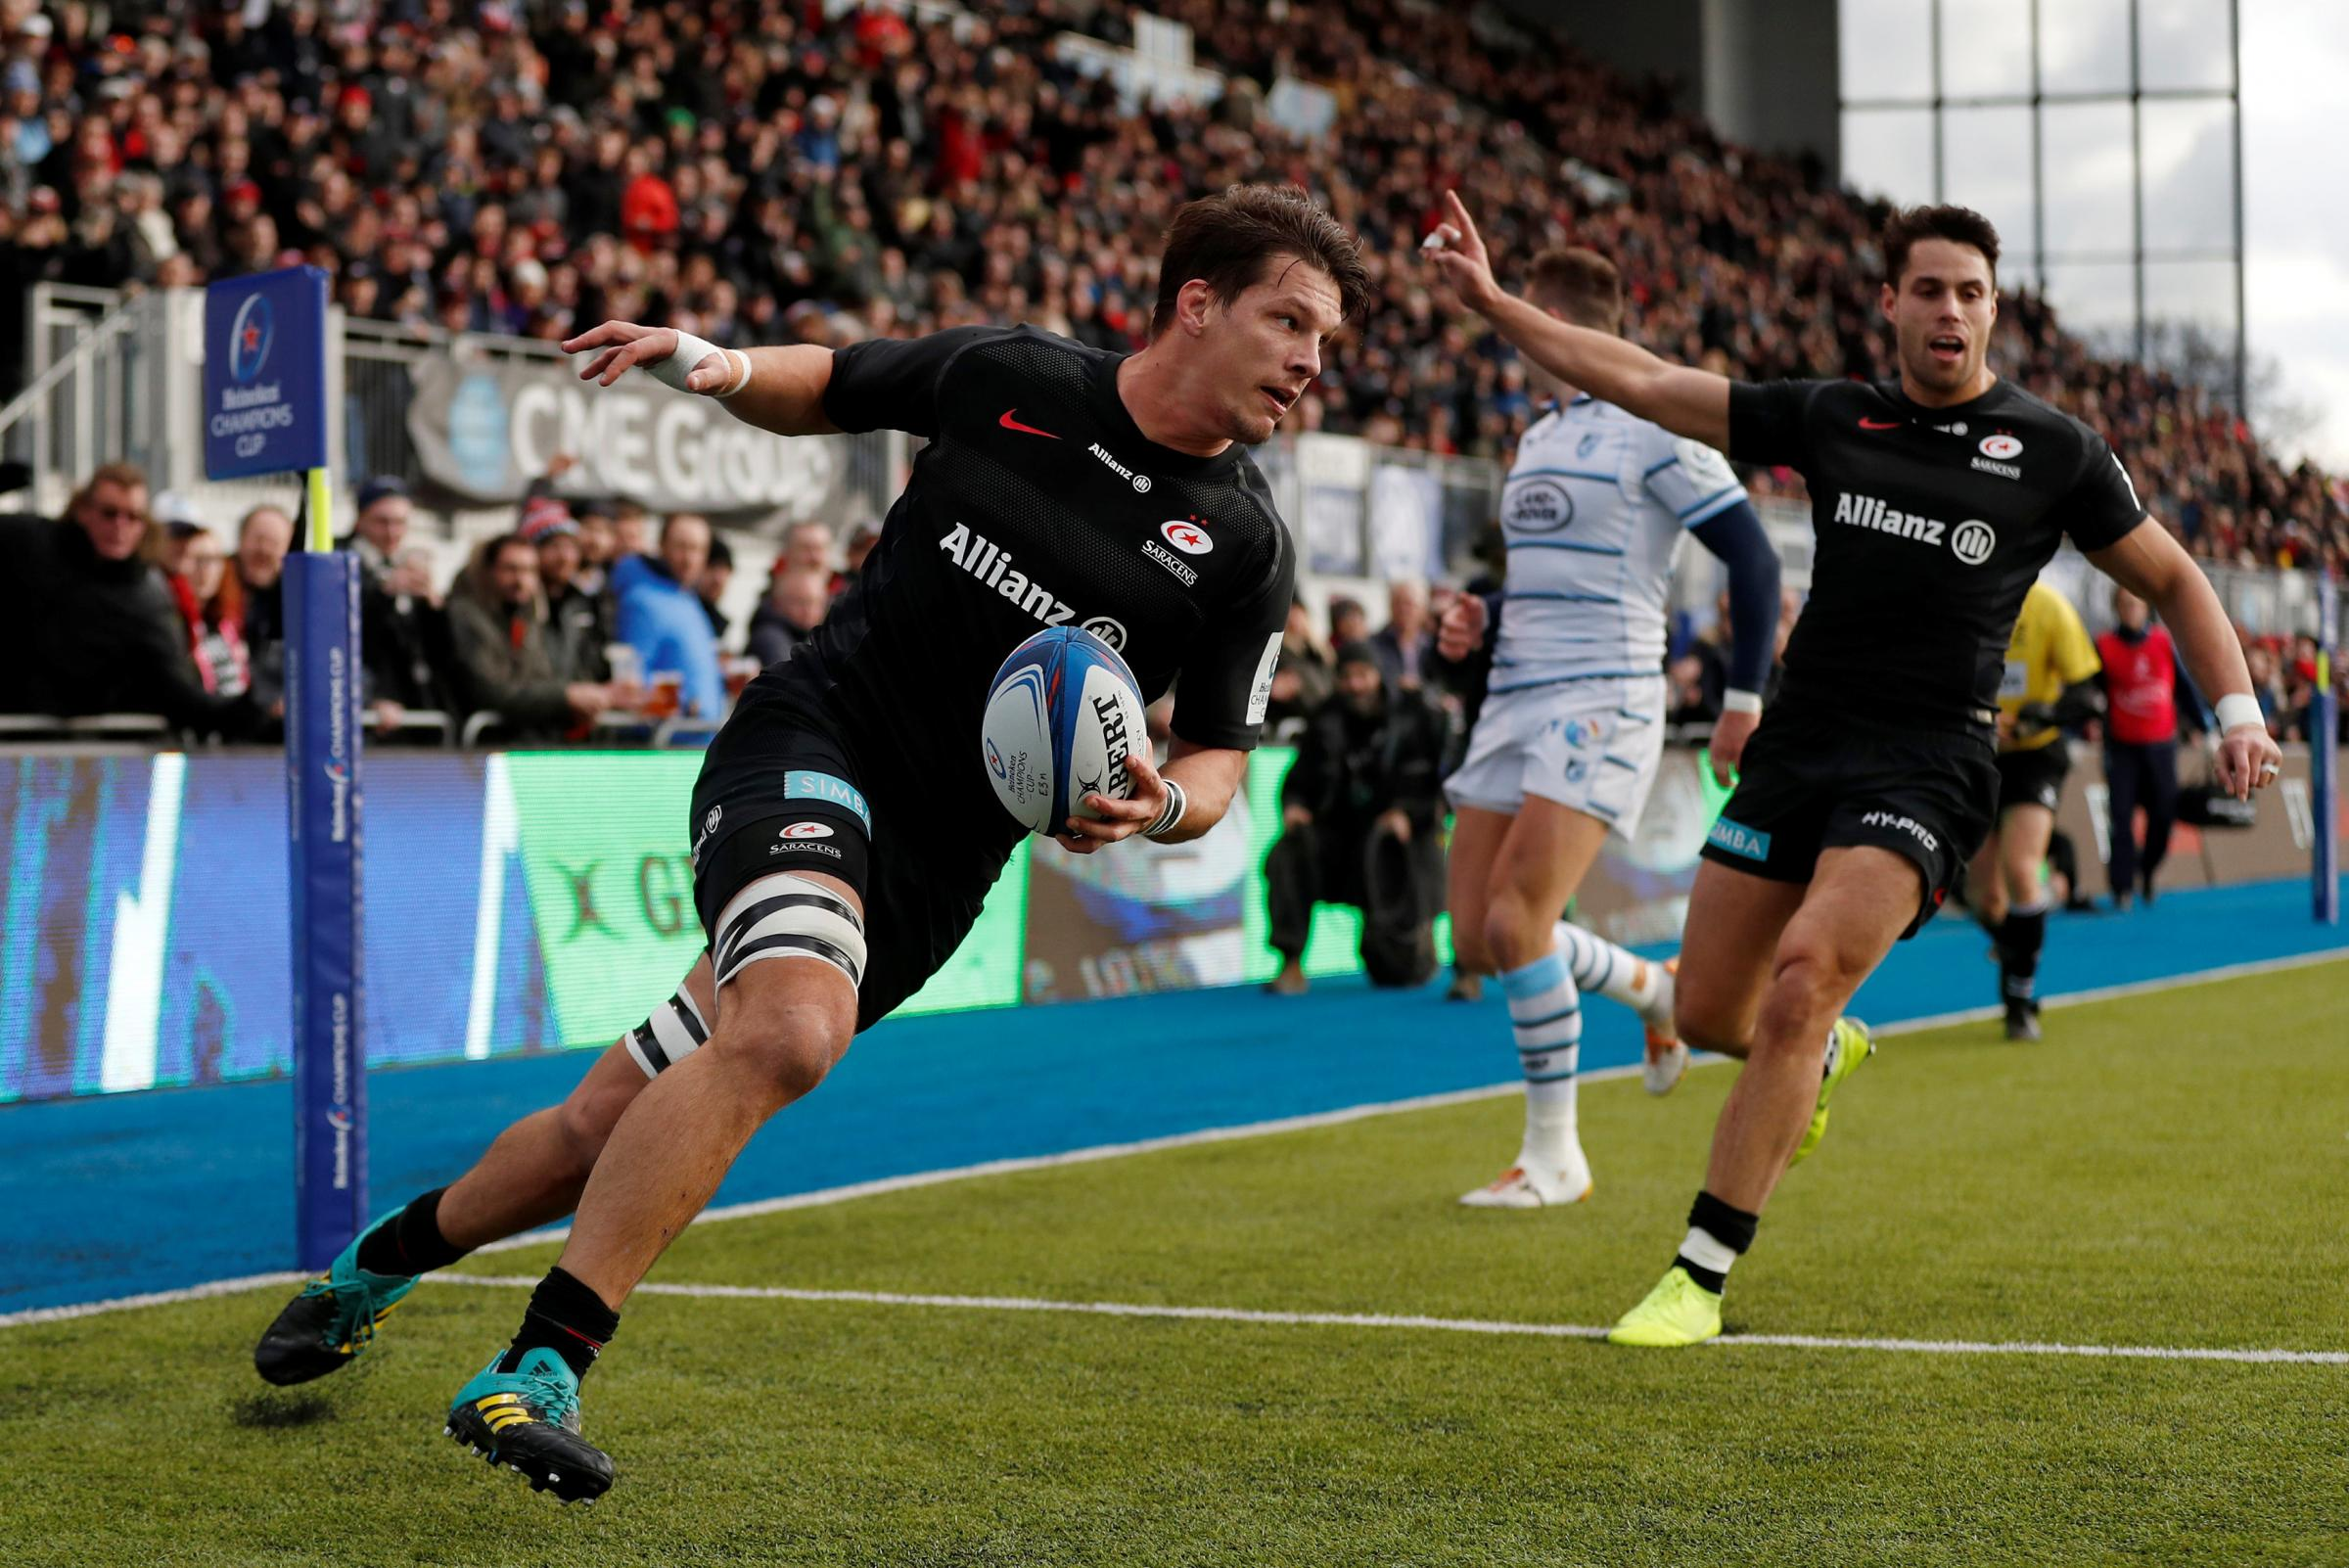 Michael Rhodes will miss the Champions Cup quarter-final. Picture: Action Images